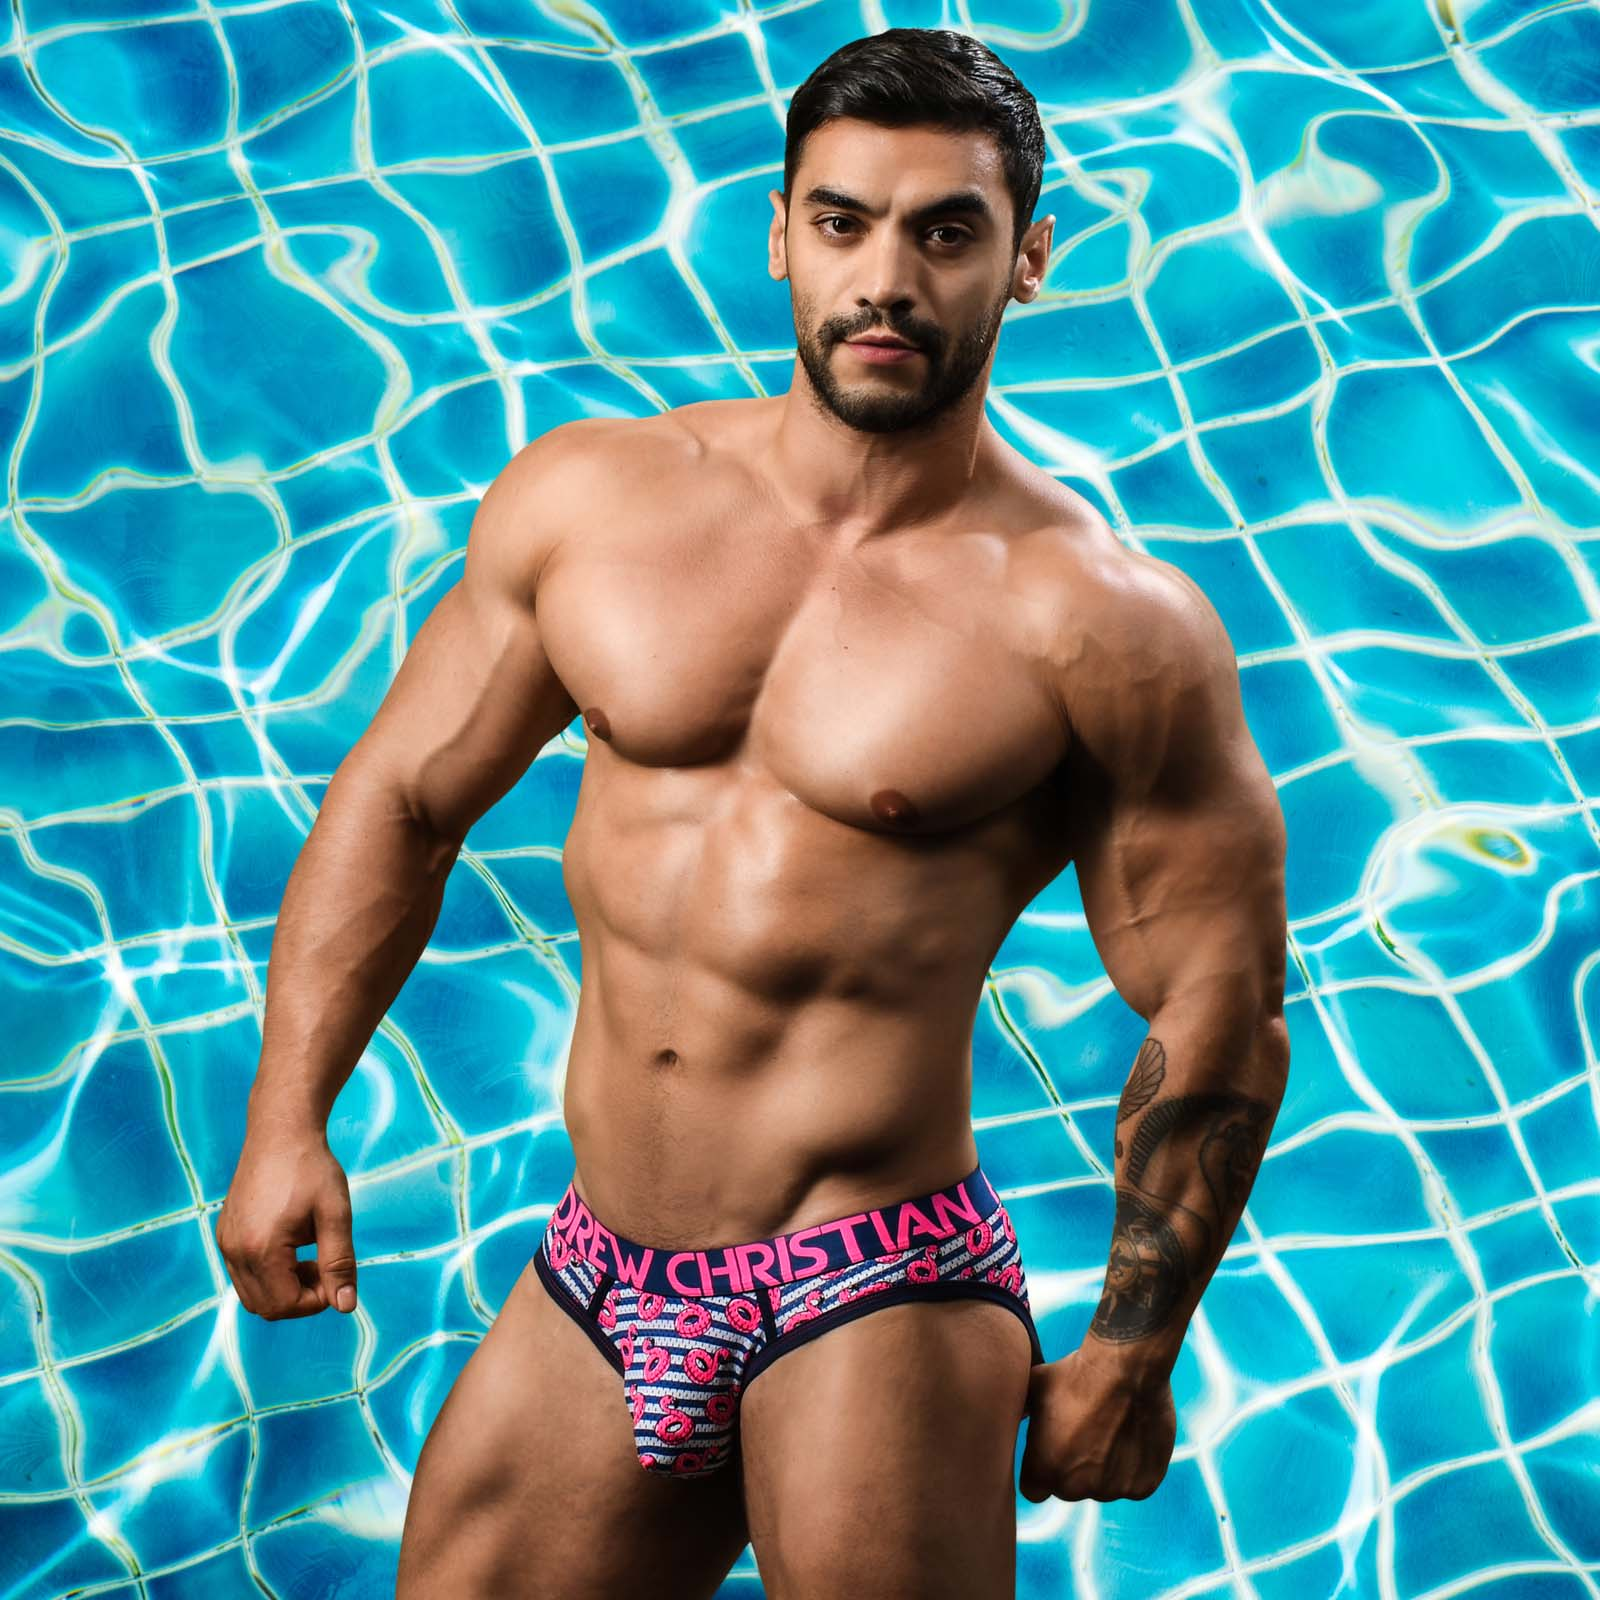 Jock Strap Andrew Christian Flamingo Pool 91098